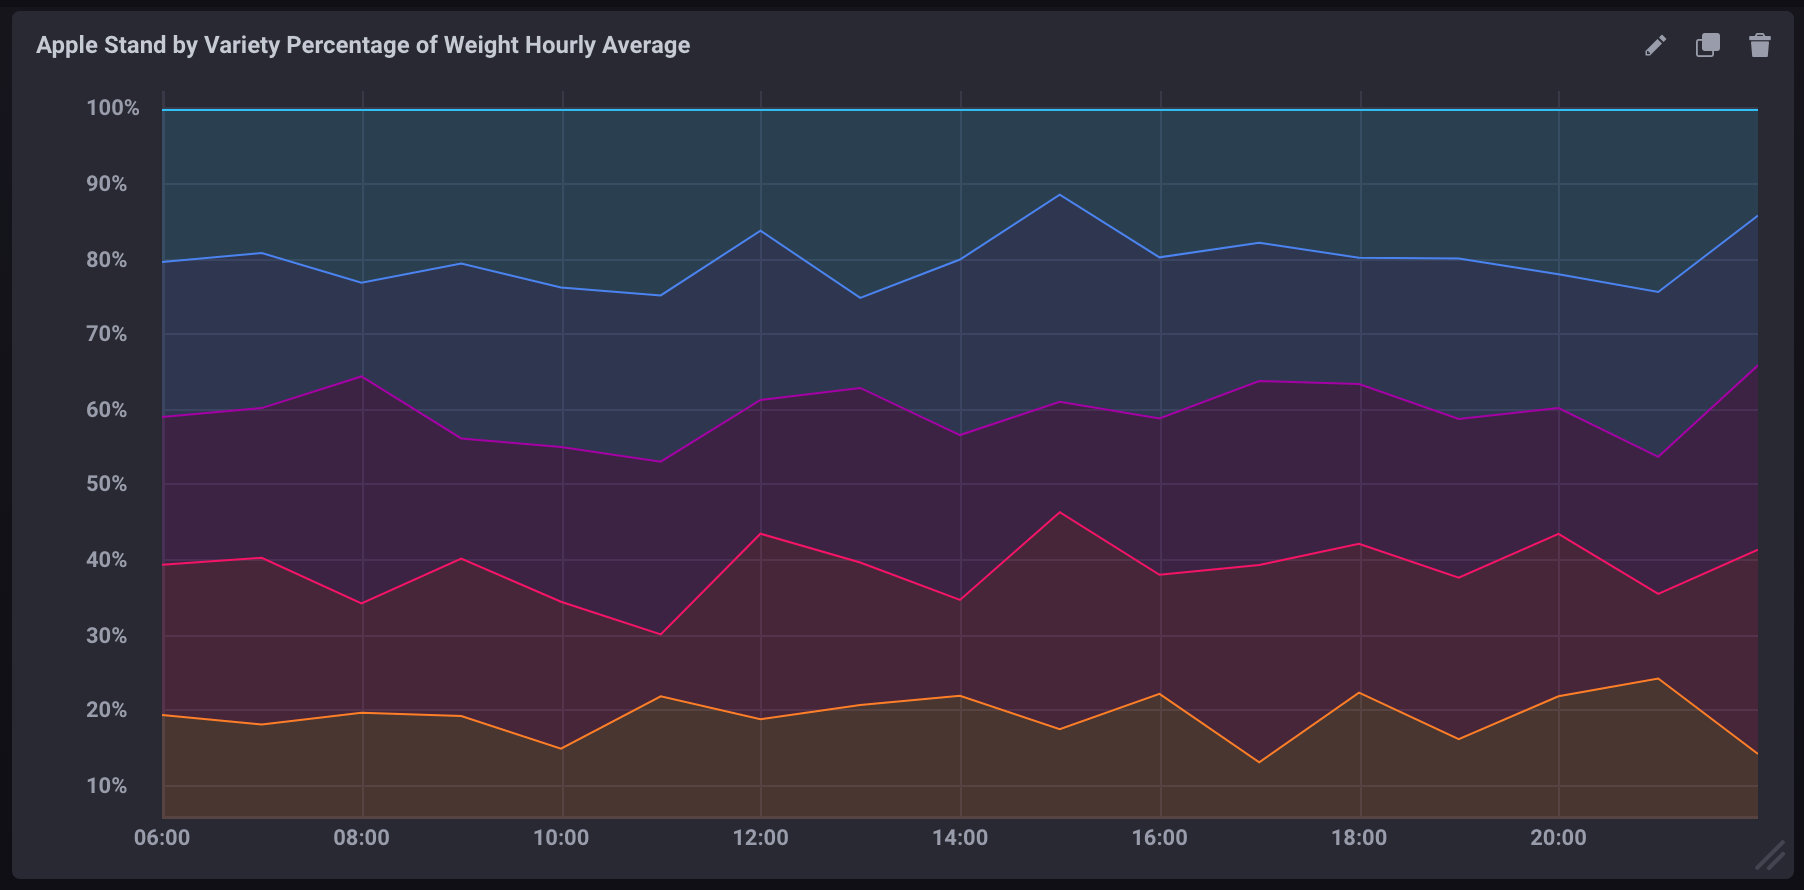 Hourly average percentage of total per apple variety